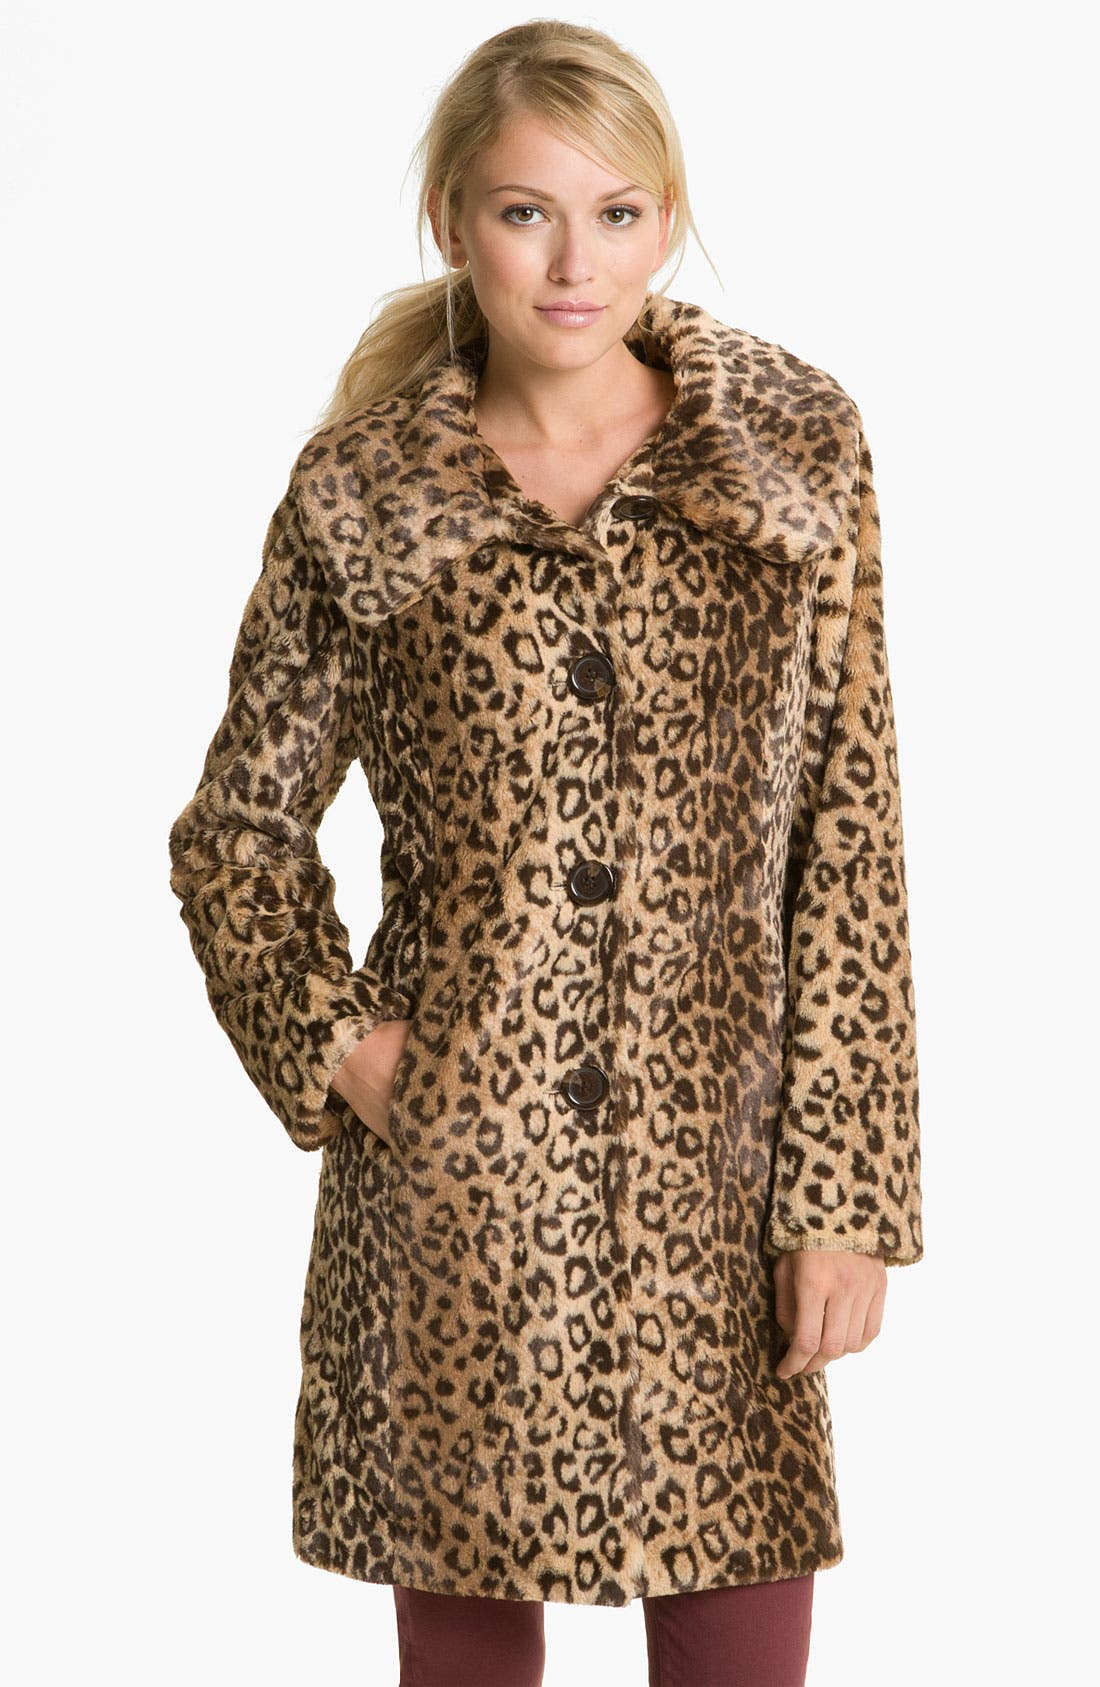 Alternate Image 1 Selected - Weatherproof® Faux Leopard Fur Walking Coat (Online Exclusive)